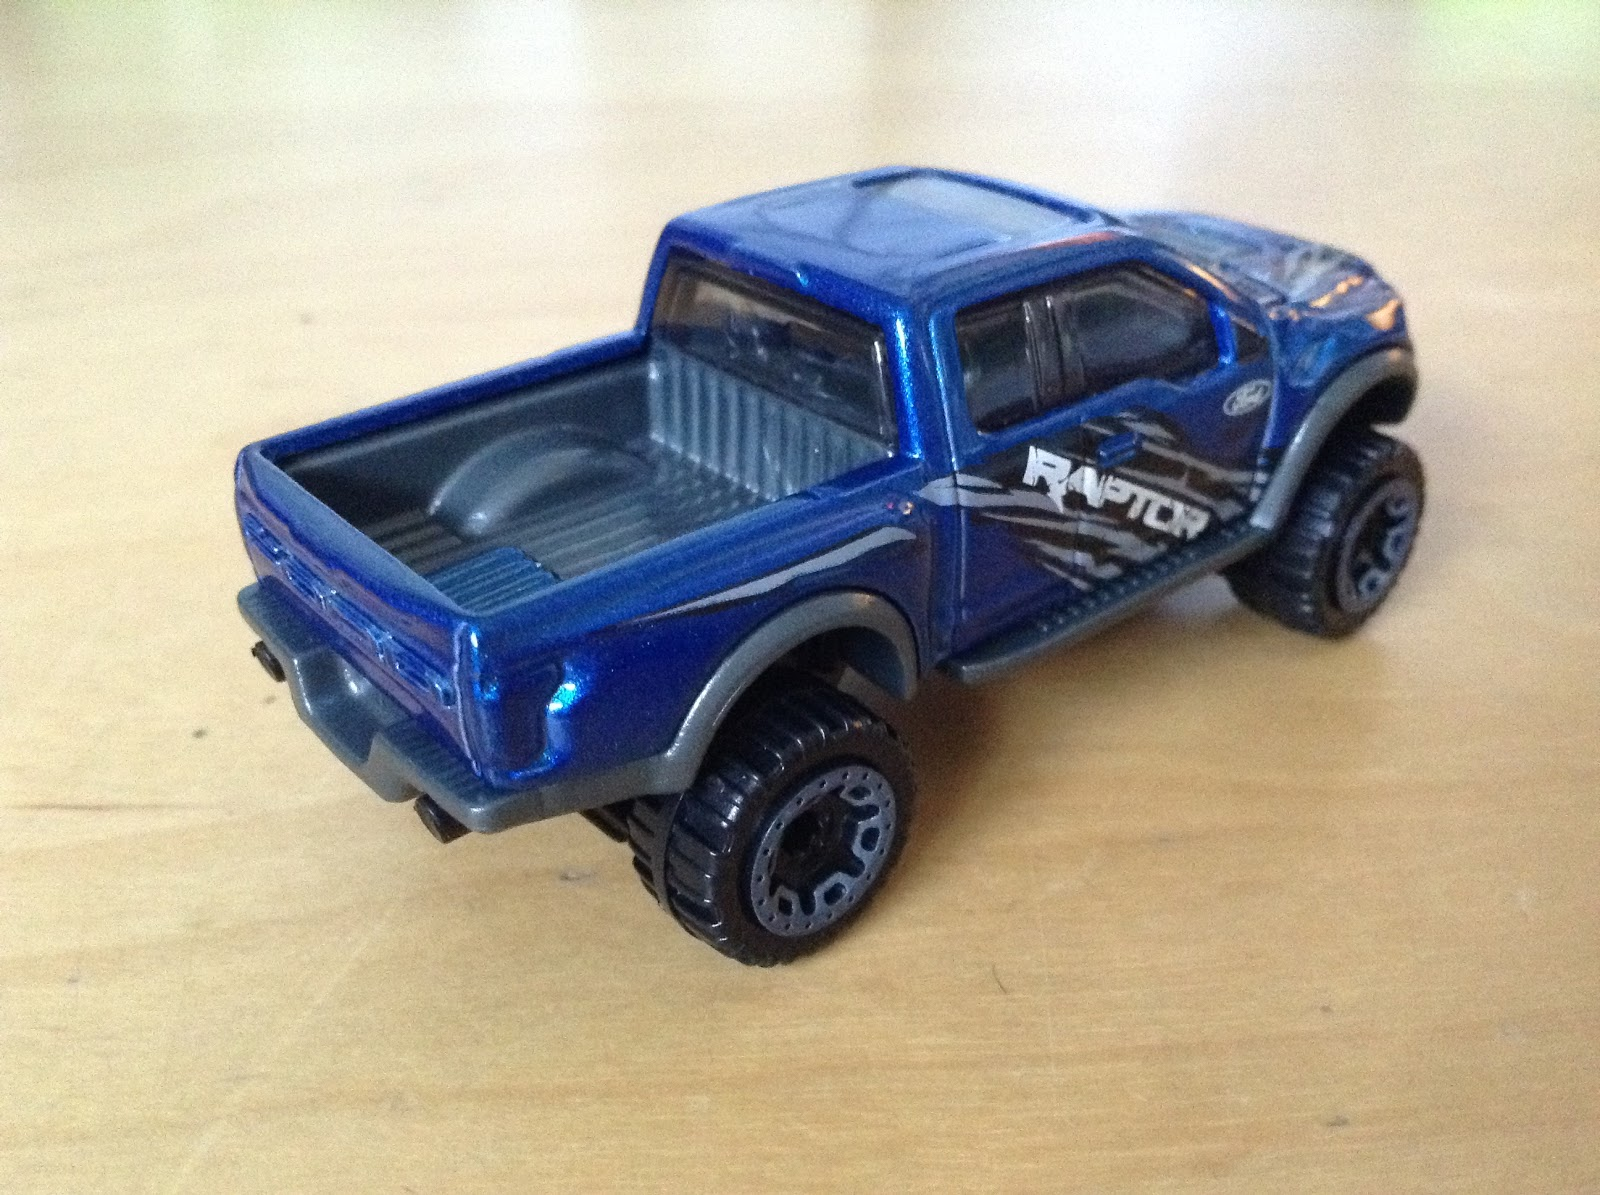 Julians hot wheels blog 2017 ford f 150 raptor new for 2016 now this is an awesome looking truck too bad there arent any details for the headlights and the taillights but at least you get some cool deco on the hood voltagebd Gallery